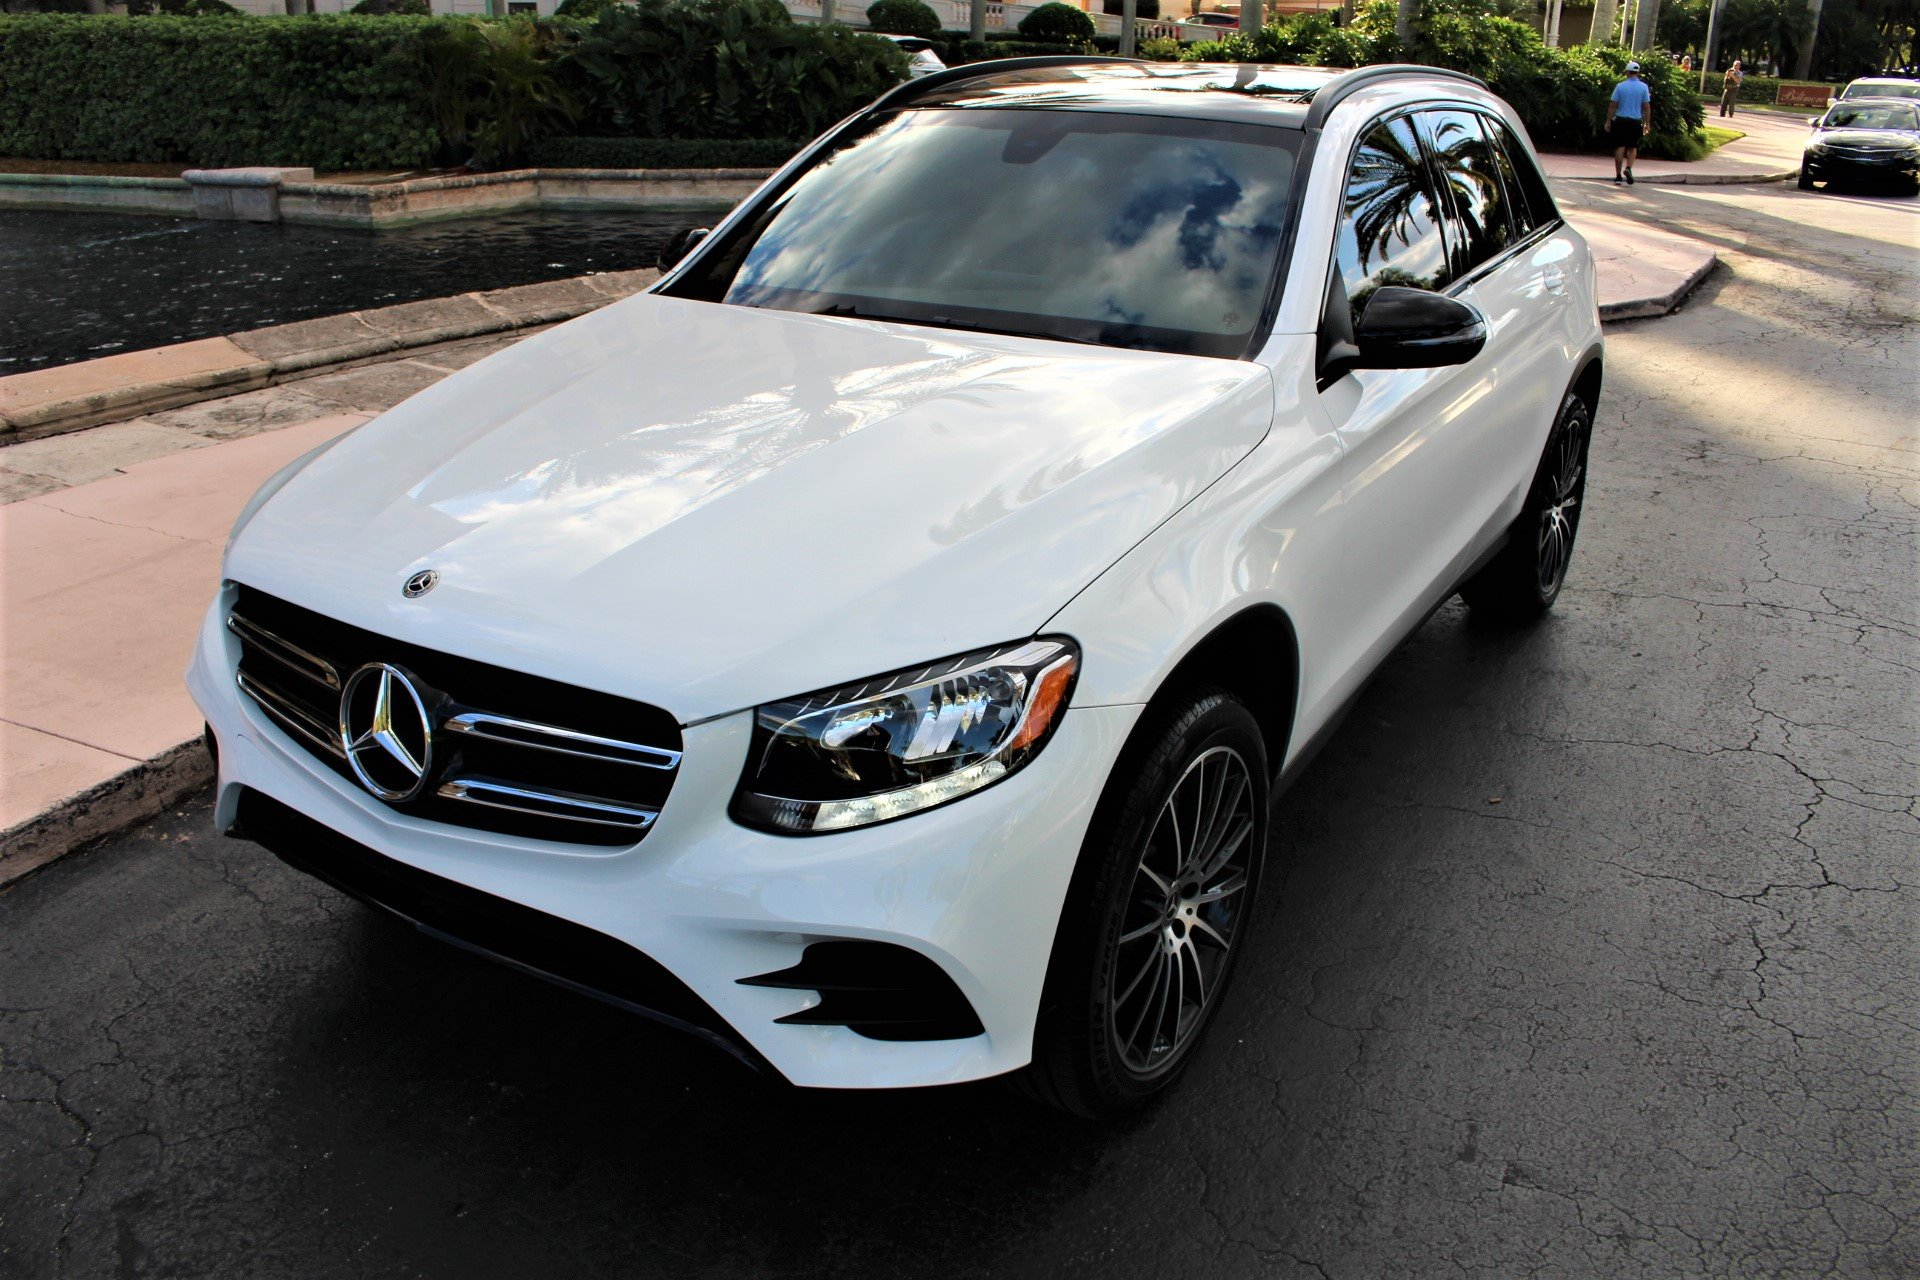 Used 2019 Mercedes-Benz GLC GLC 300 for sale Sold at The Gables Sports Cars in Miami FL 33146 4